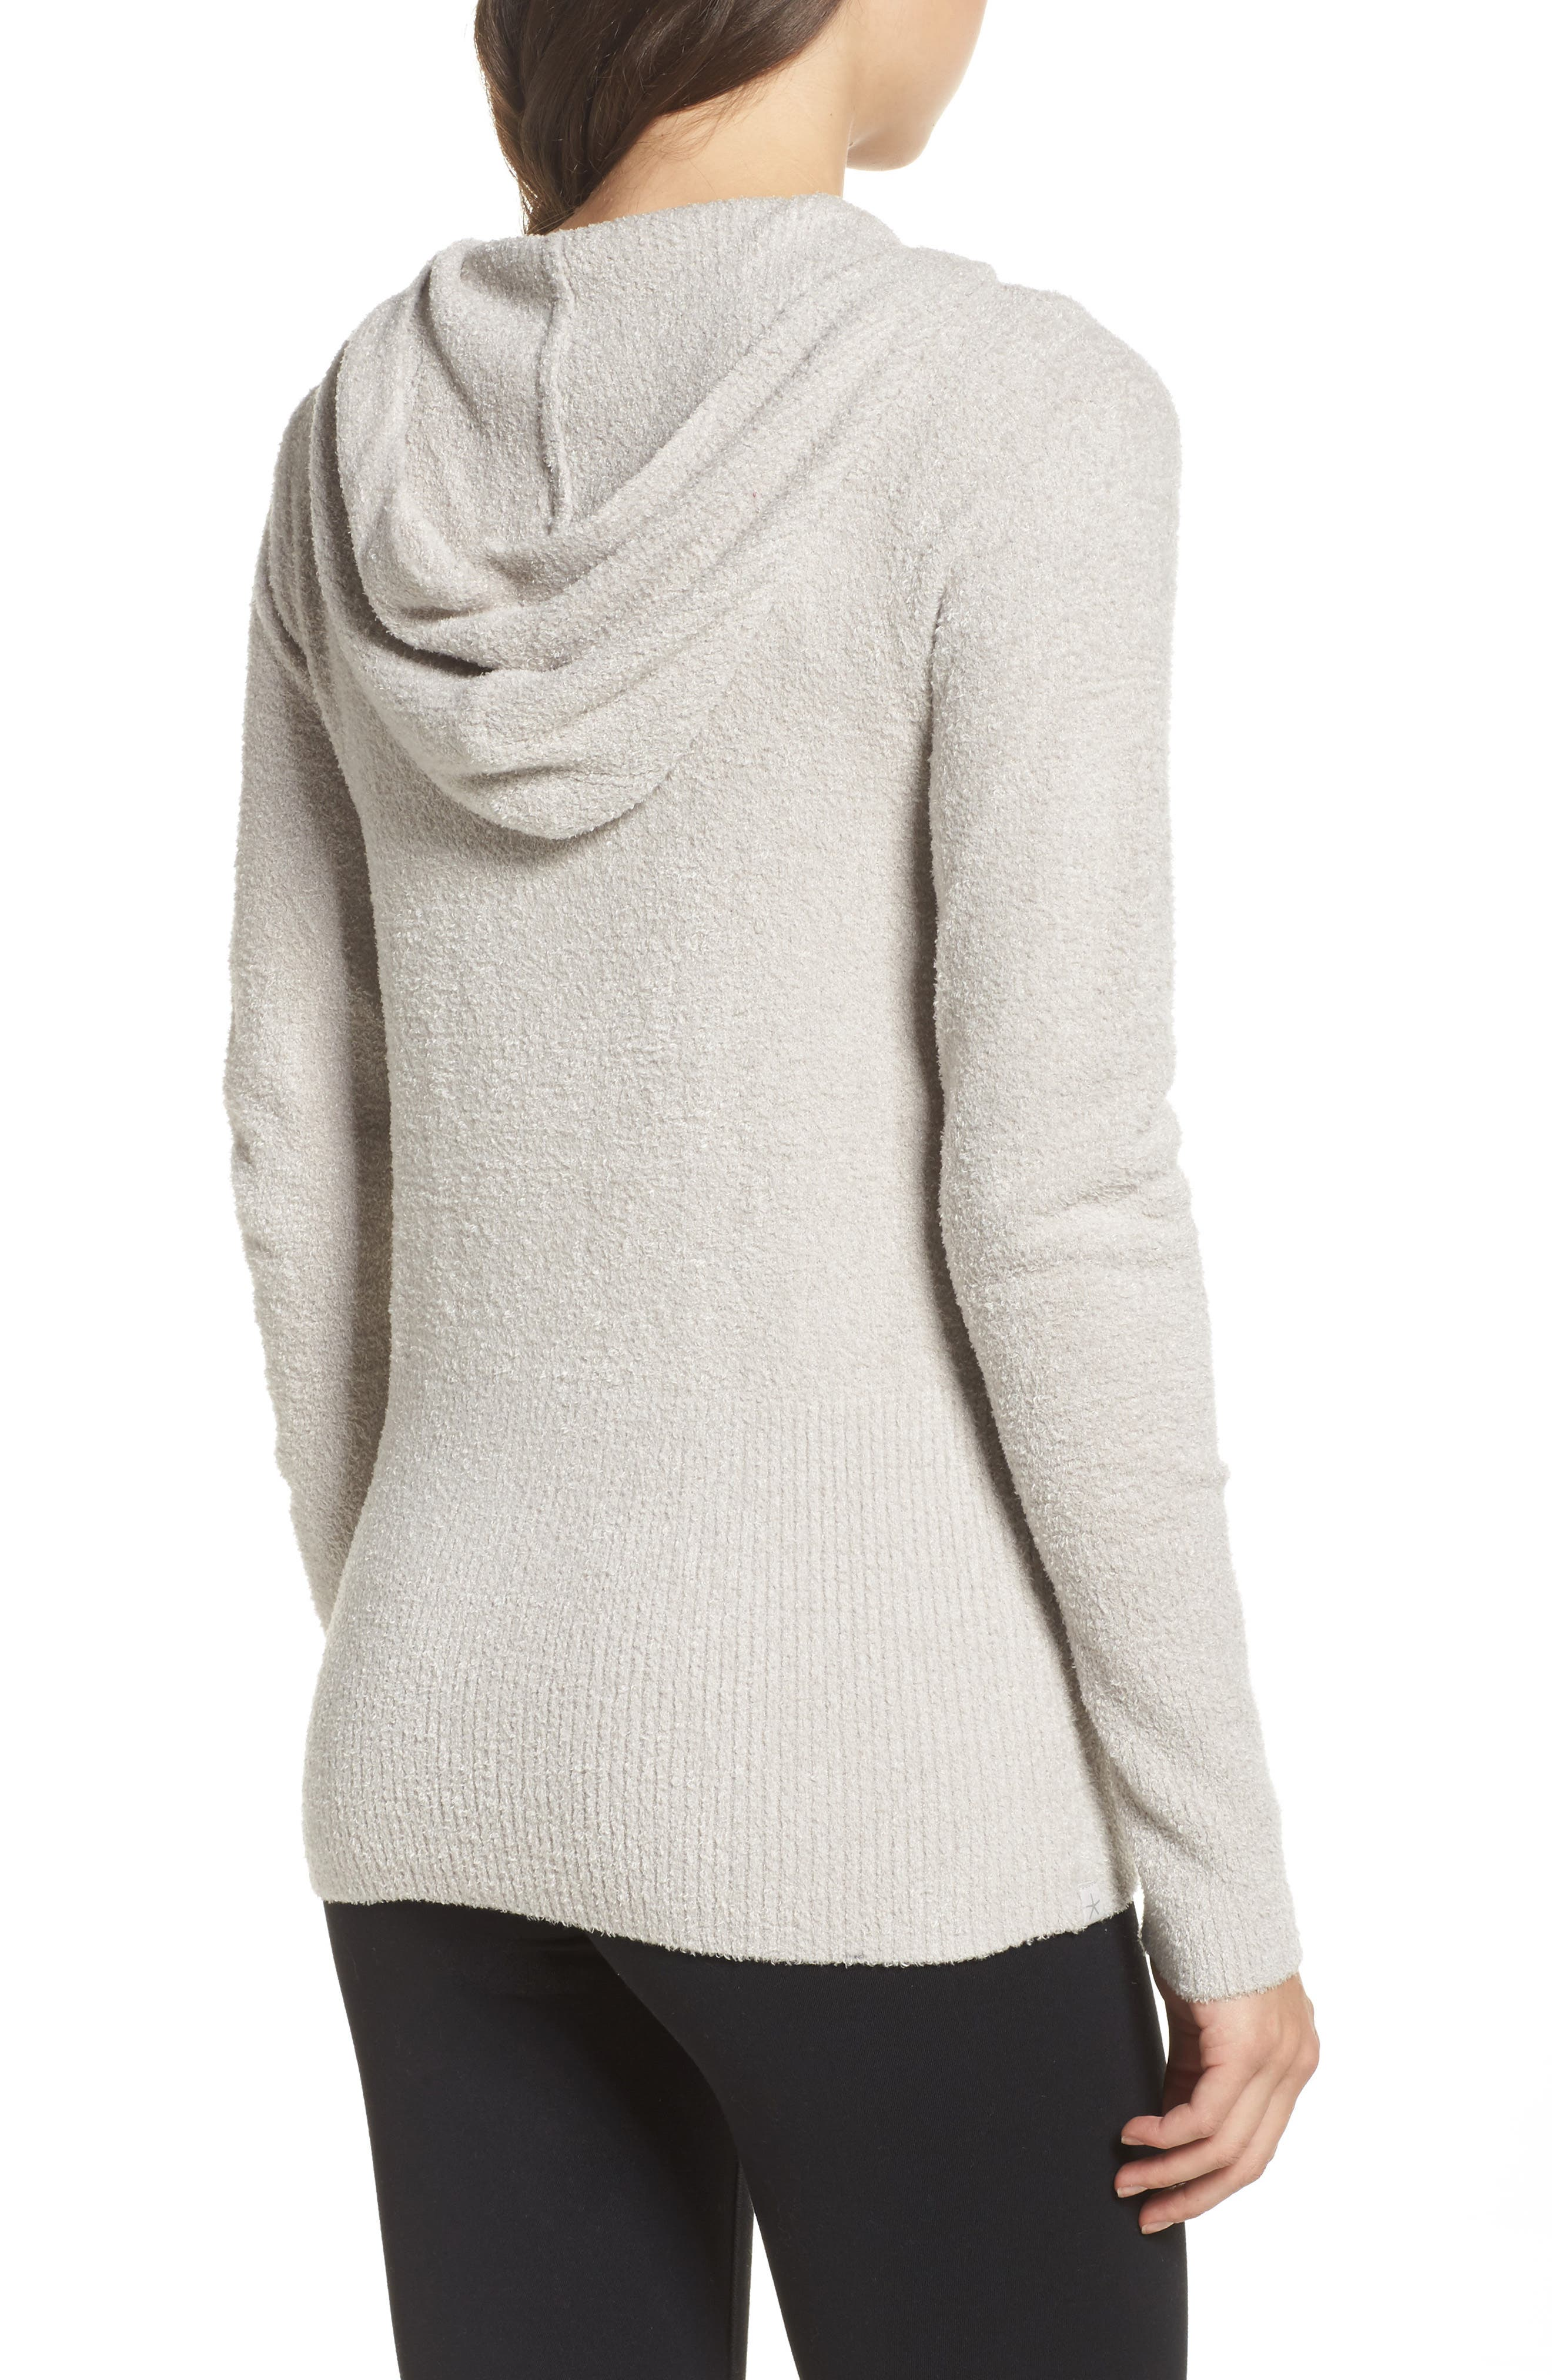 Cozychic Lite<sup>®</sup> Lounge Hoodie,                             Alternate thumbnail 2, color,                             SILVER